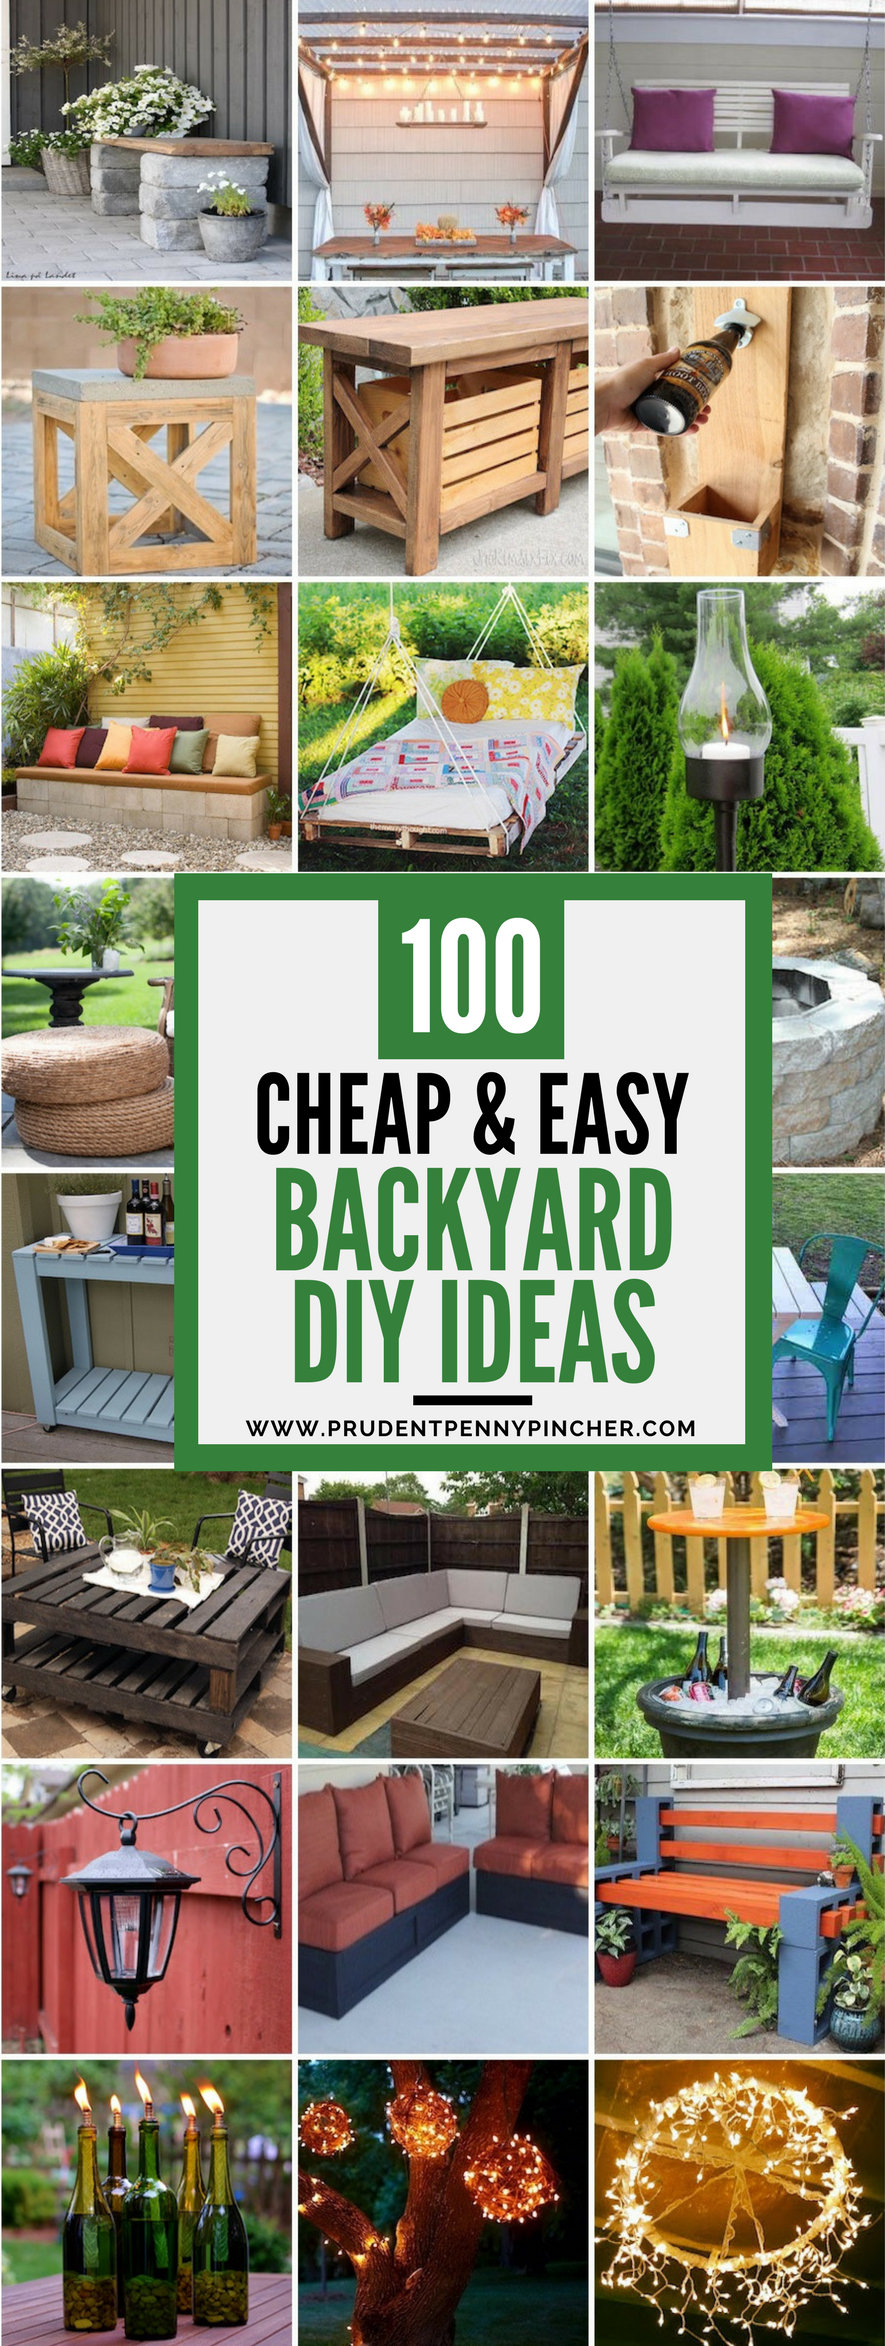 Simple And Cheap Living Room Decoration: 100 Cheap And Easy DIY Backyard Ideas